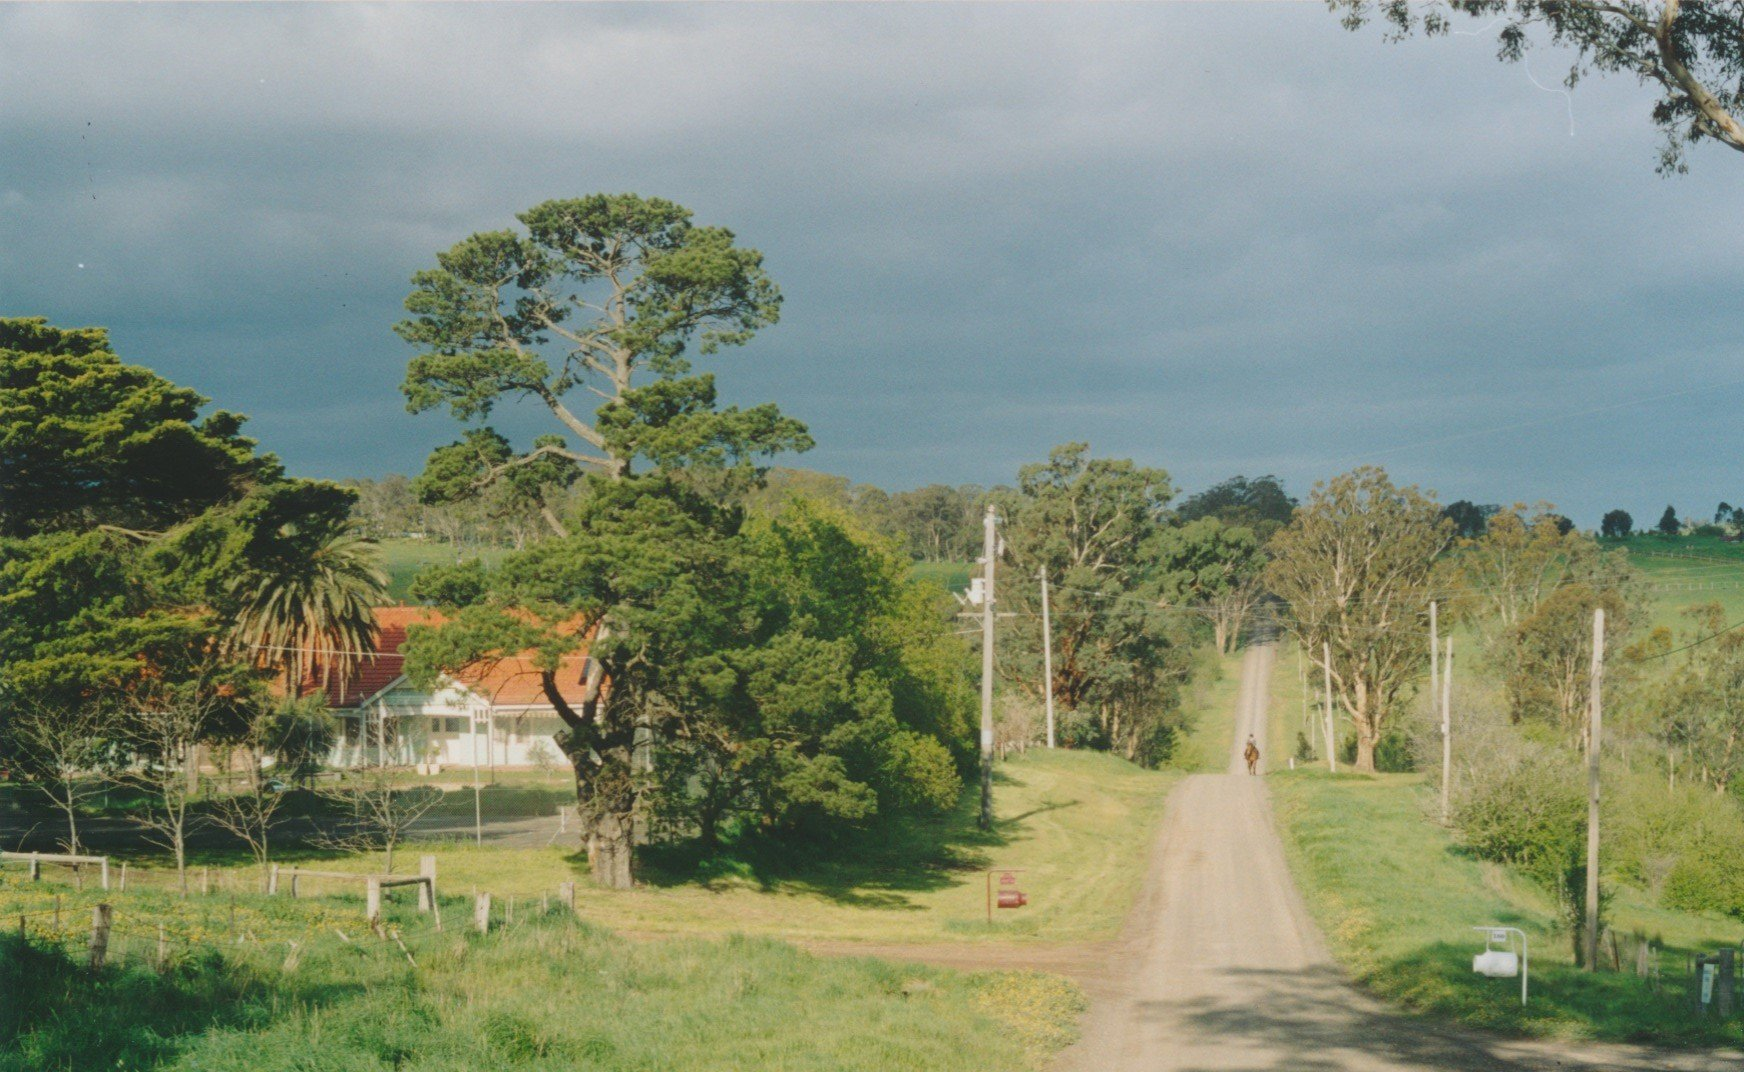 Early settlers included Pierce Brennan who, in about 1867, selected land along the Running Creek to the north of William Murphy and Charles Draper's 'Charnwood', which he called 'Fernvale', and his brother Michael Brennan who selected land to the west of the Deep Creek, which he called 'Pine Hill'.  Pictured in 2003, 'Fernvale' on Running Creek, Brennan's Road East.  The Evelyn Observer of 1917 reported that Marty Brennan accidentally deposited a passenger and some empty fruit cases on the roadway while travelling in his horse-drawn fruit wagon